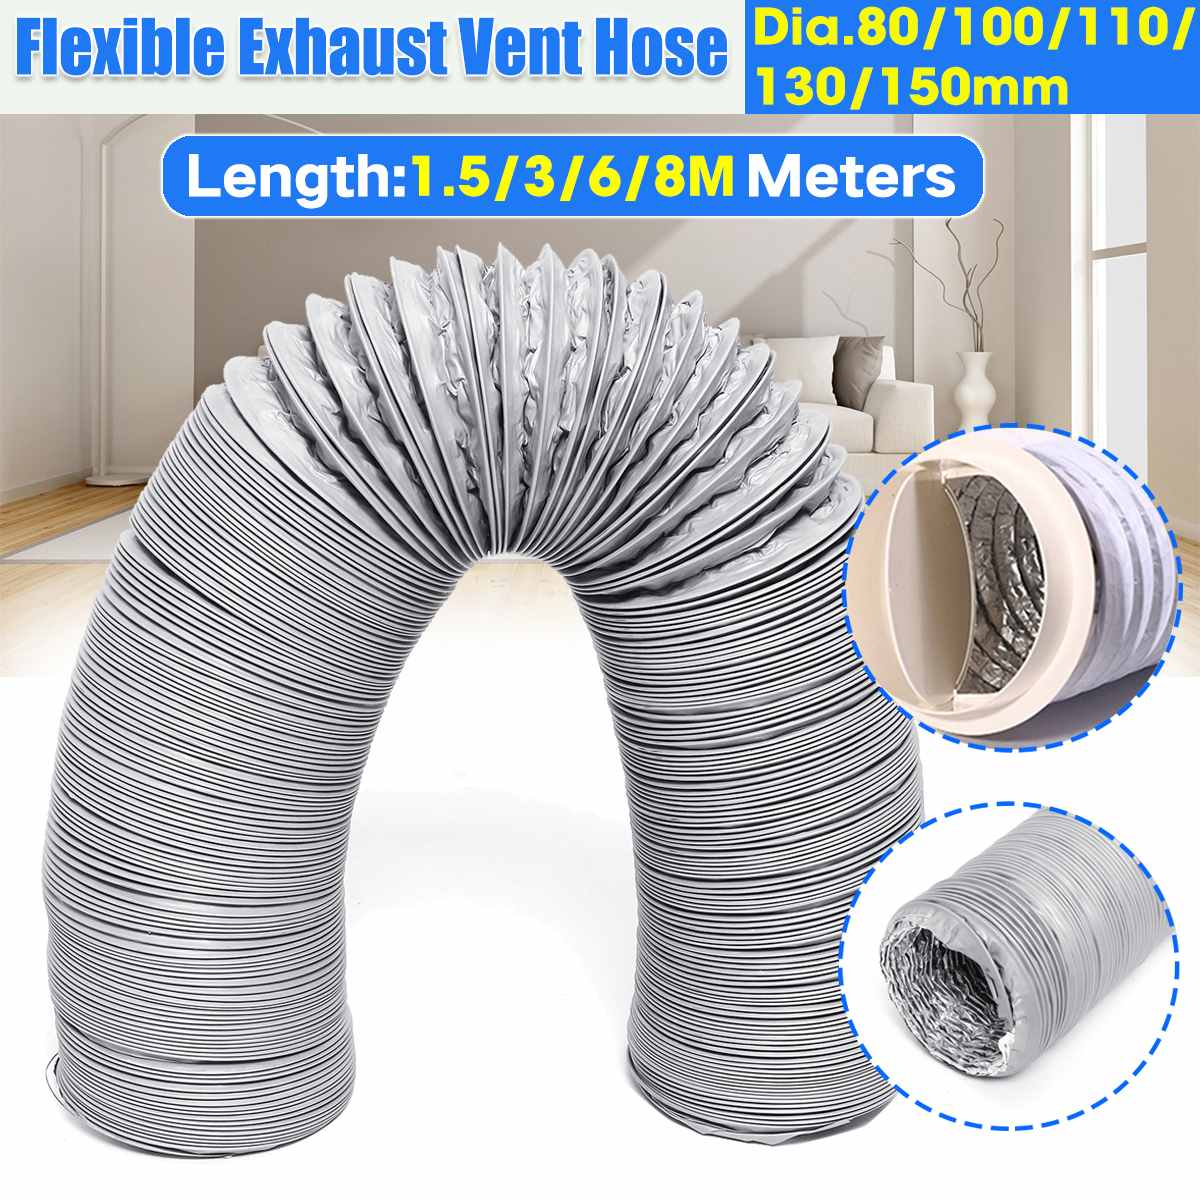 Air Conditioner Exhaust Pipe Vent Hose Flexible Outlet 80mm/100mm/110mm/130mm/150mm Portable Air Conditioner Exhaust Vent Pipe